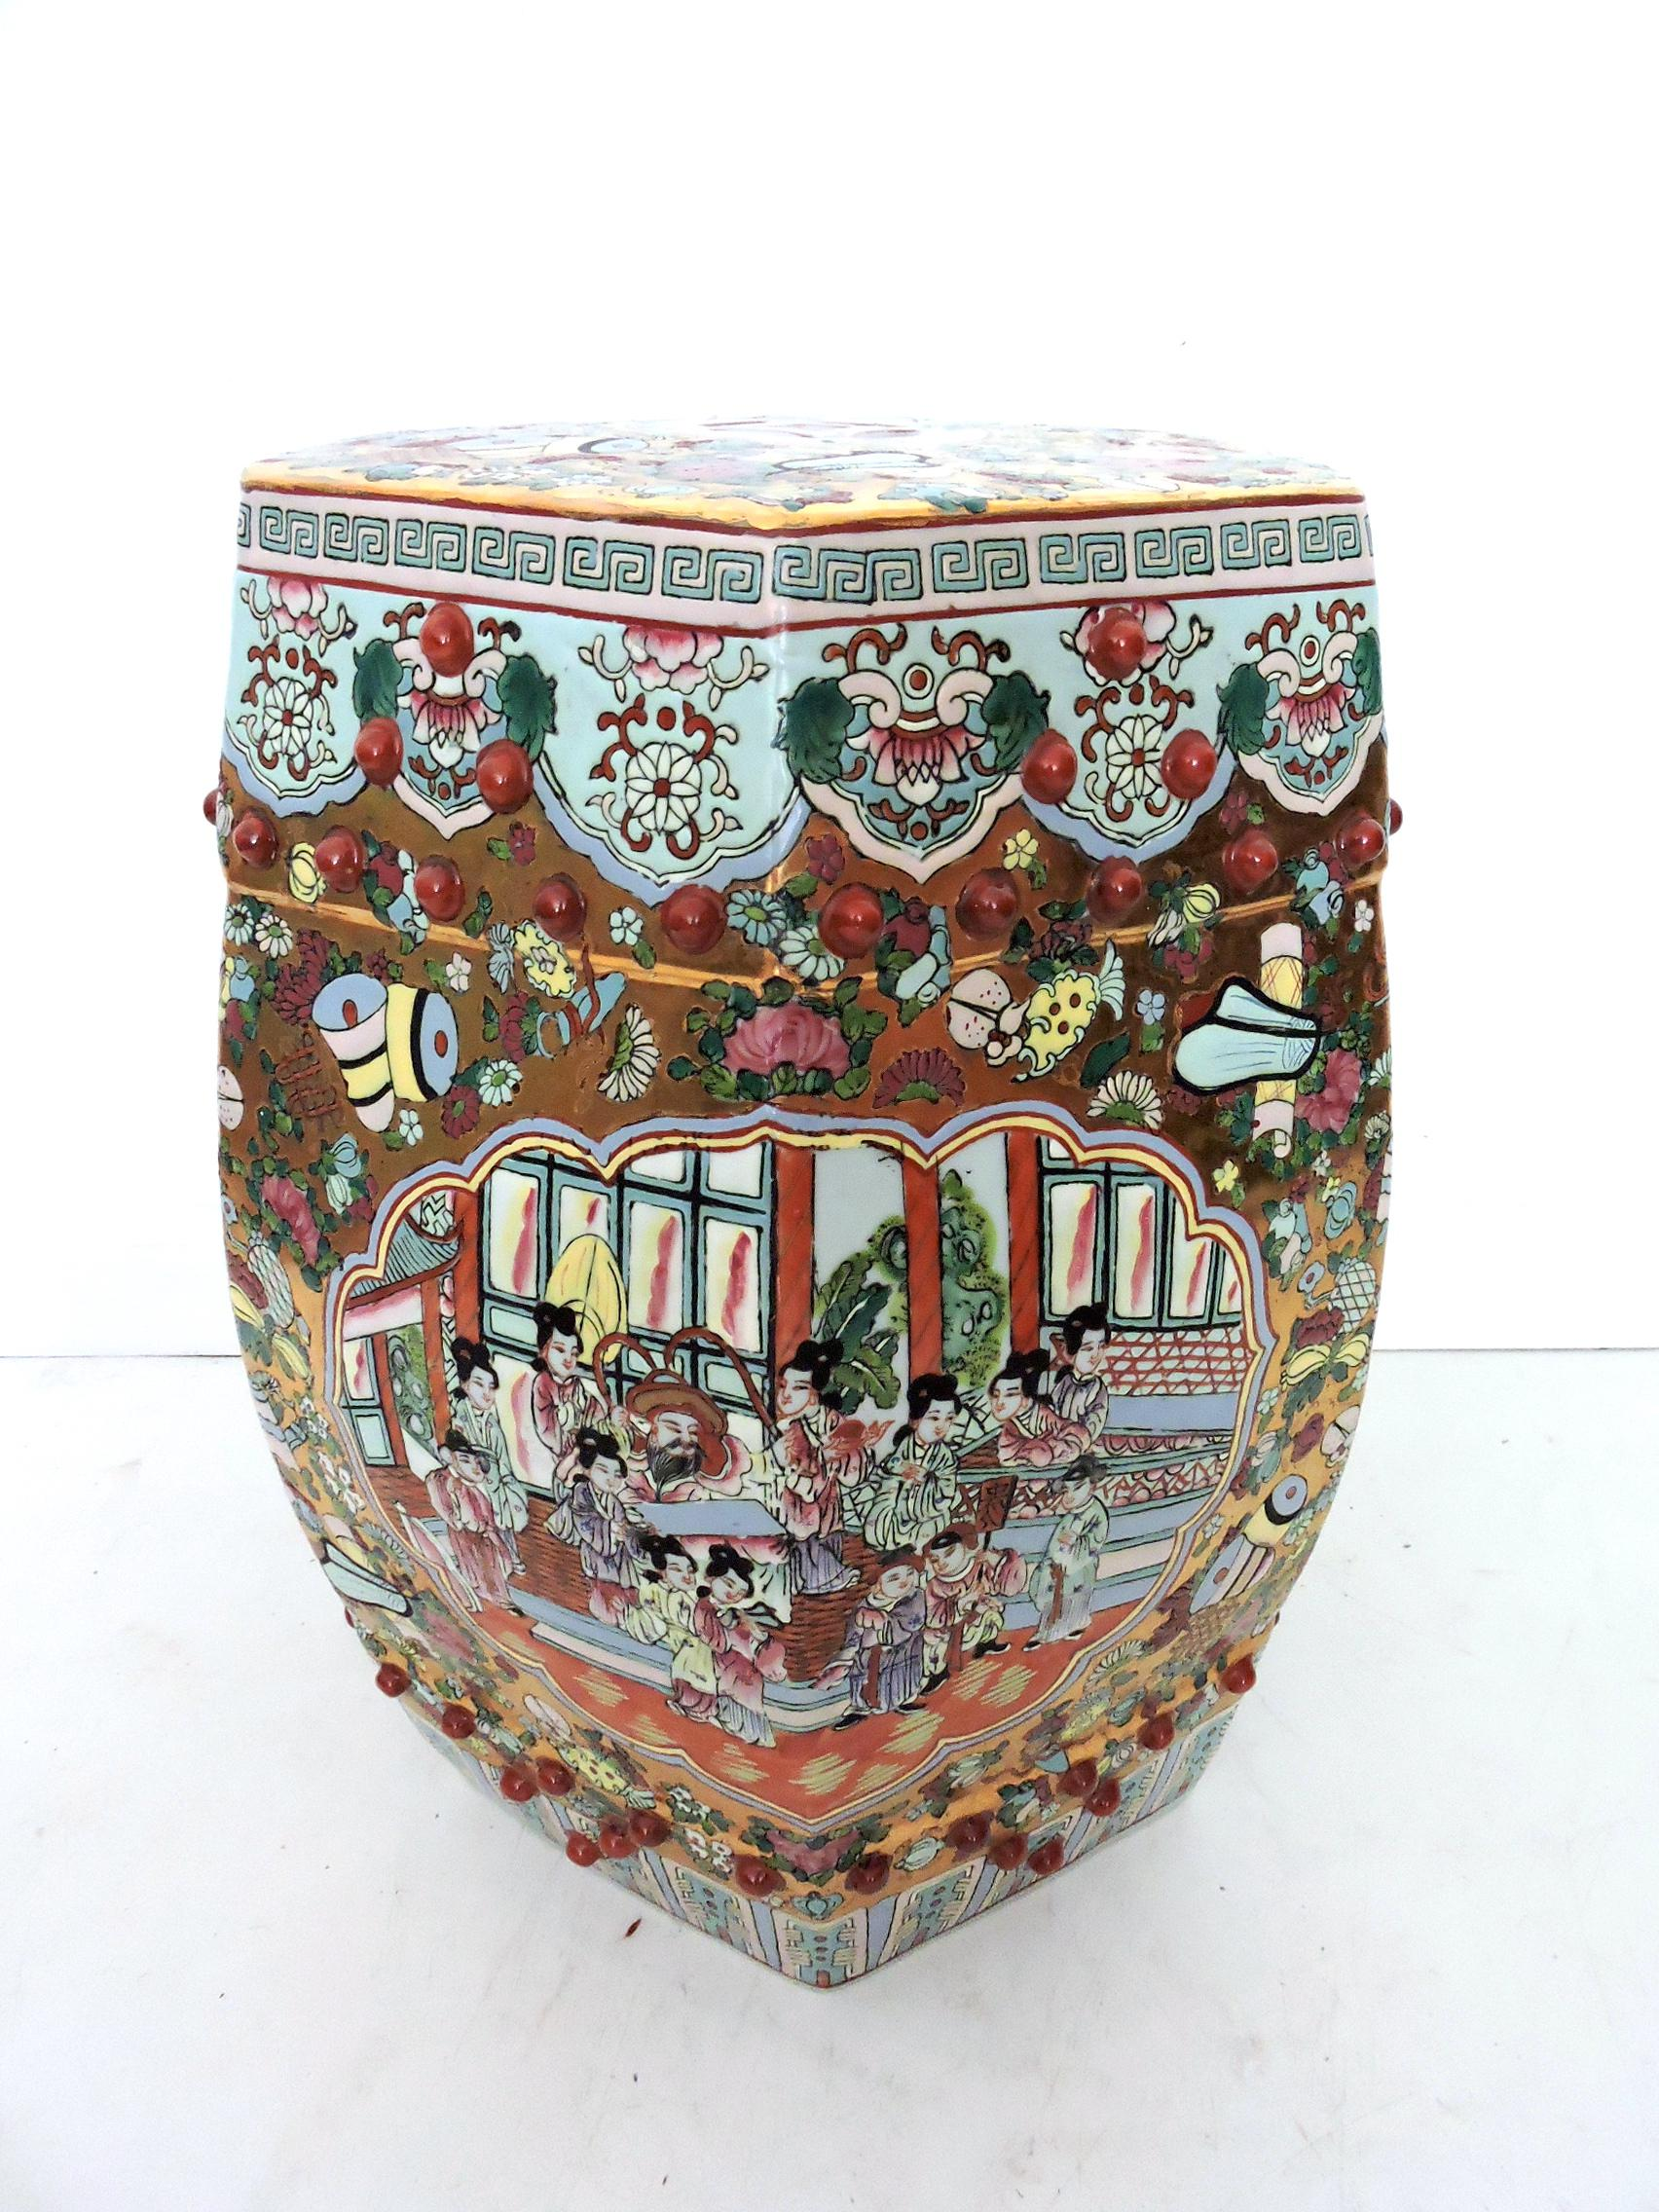 Gorgeous Hues Of Gold, Turquoise, And Pink On This Heavy Porcelain Export Chinese  Garden